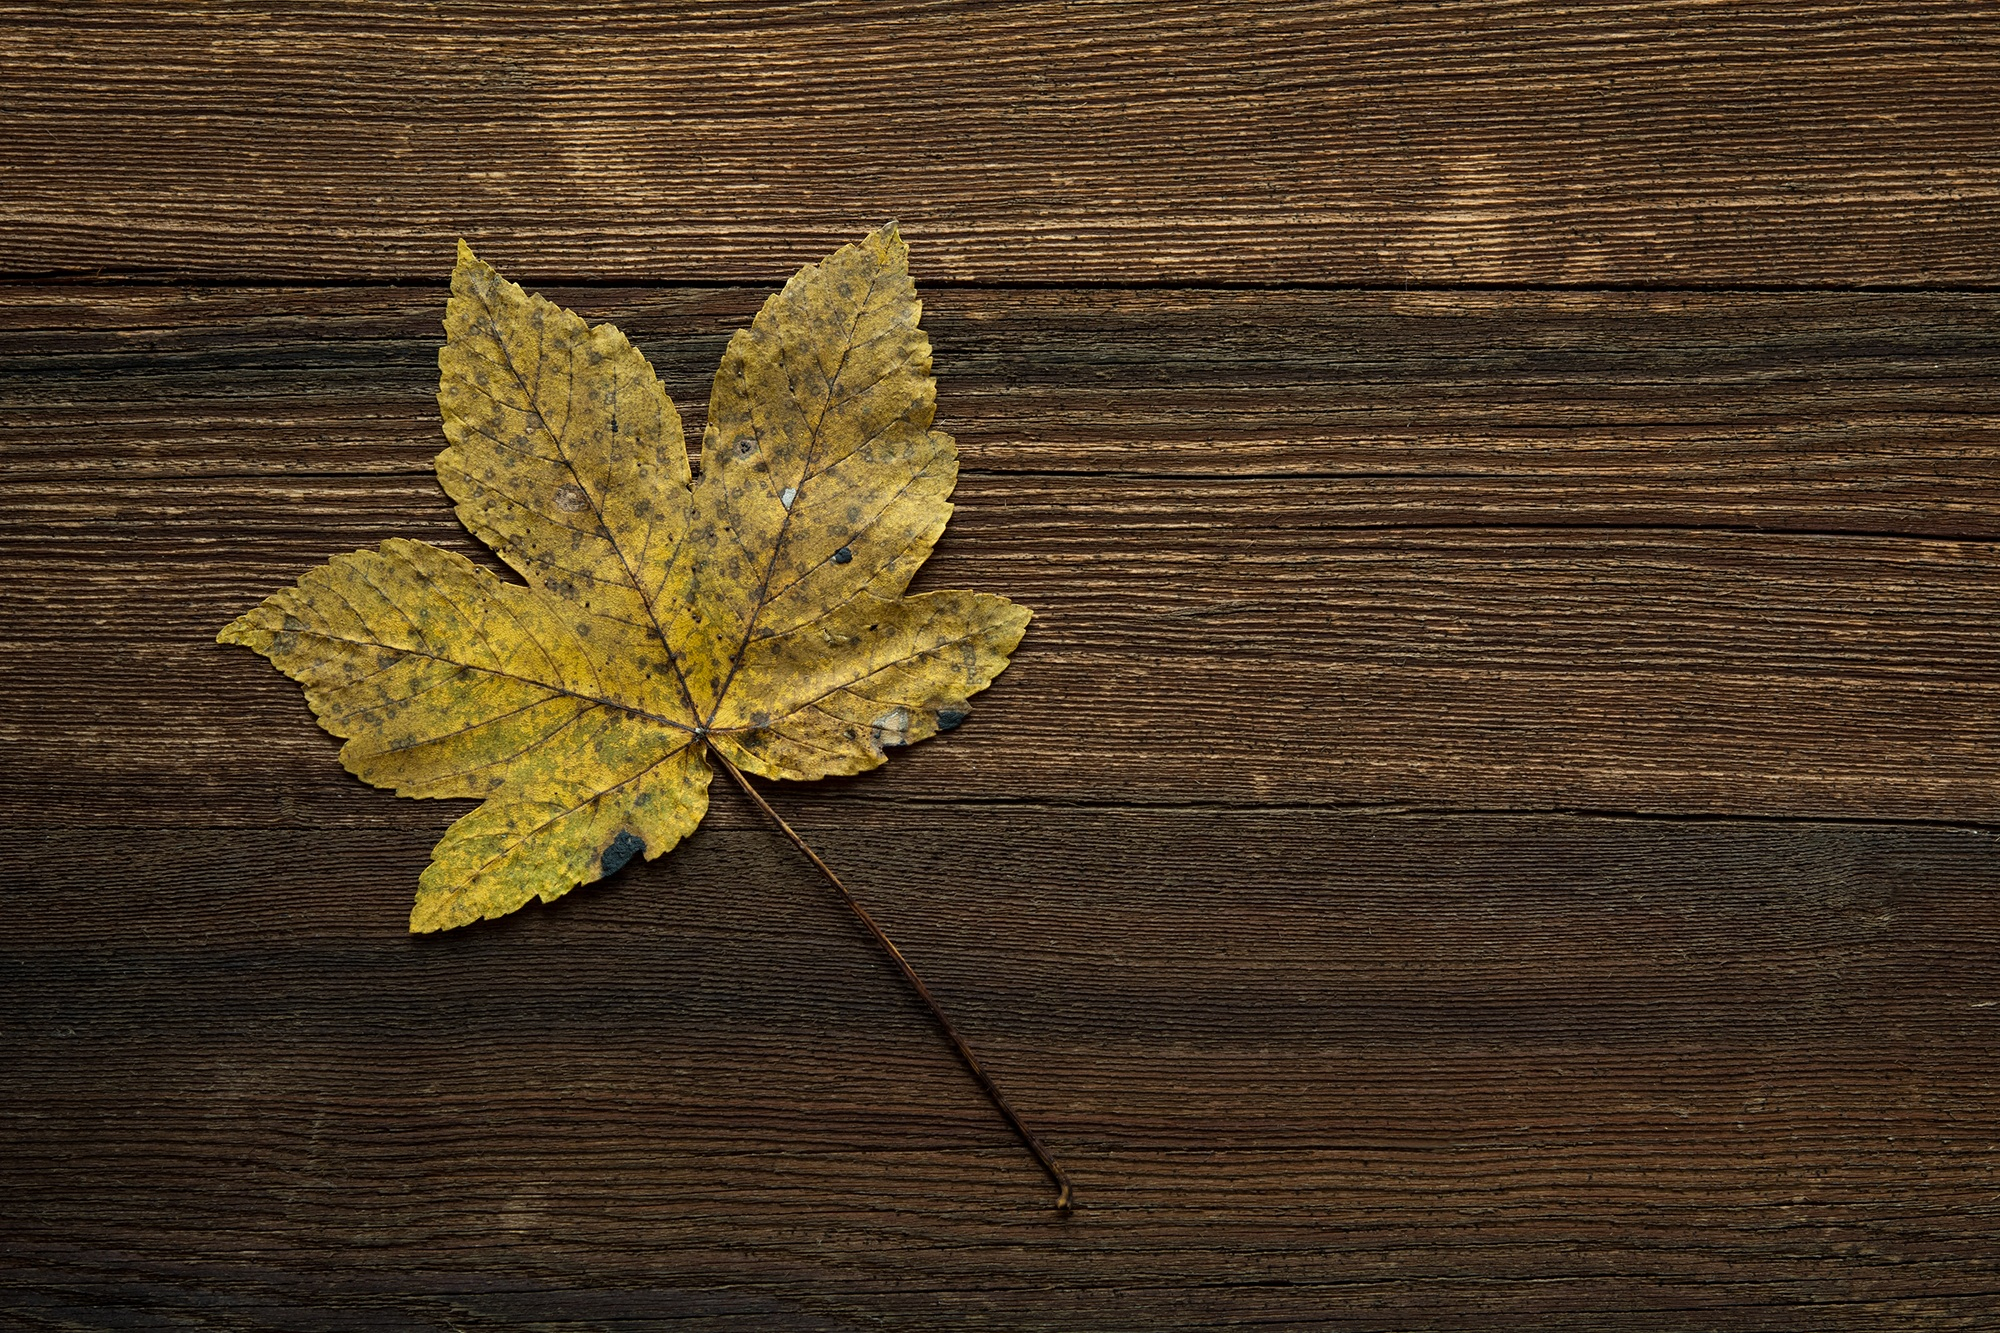 Free stock photo of hd wallpaper leaf table - Wallpaper images ...